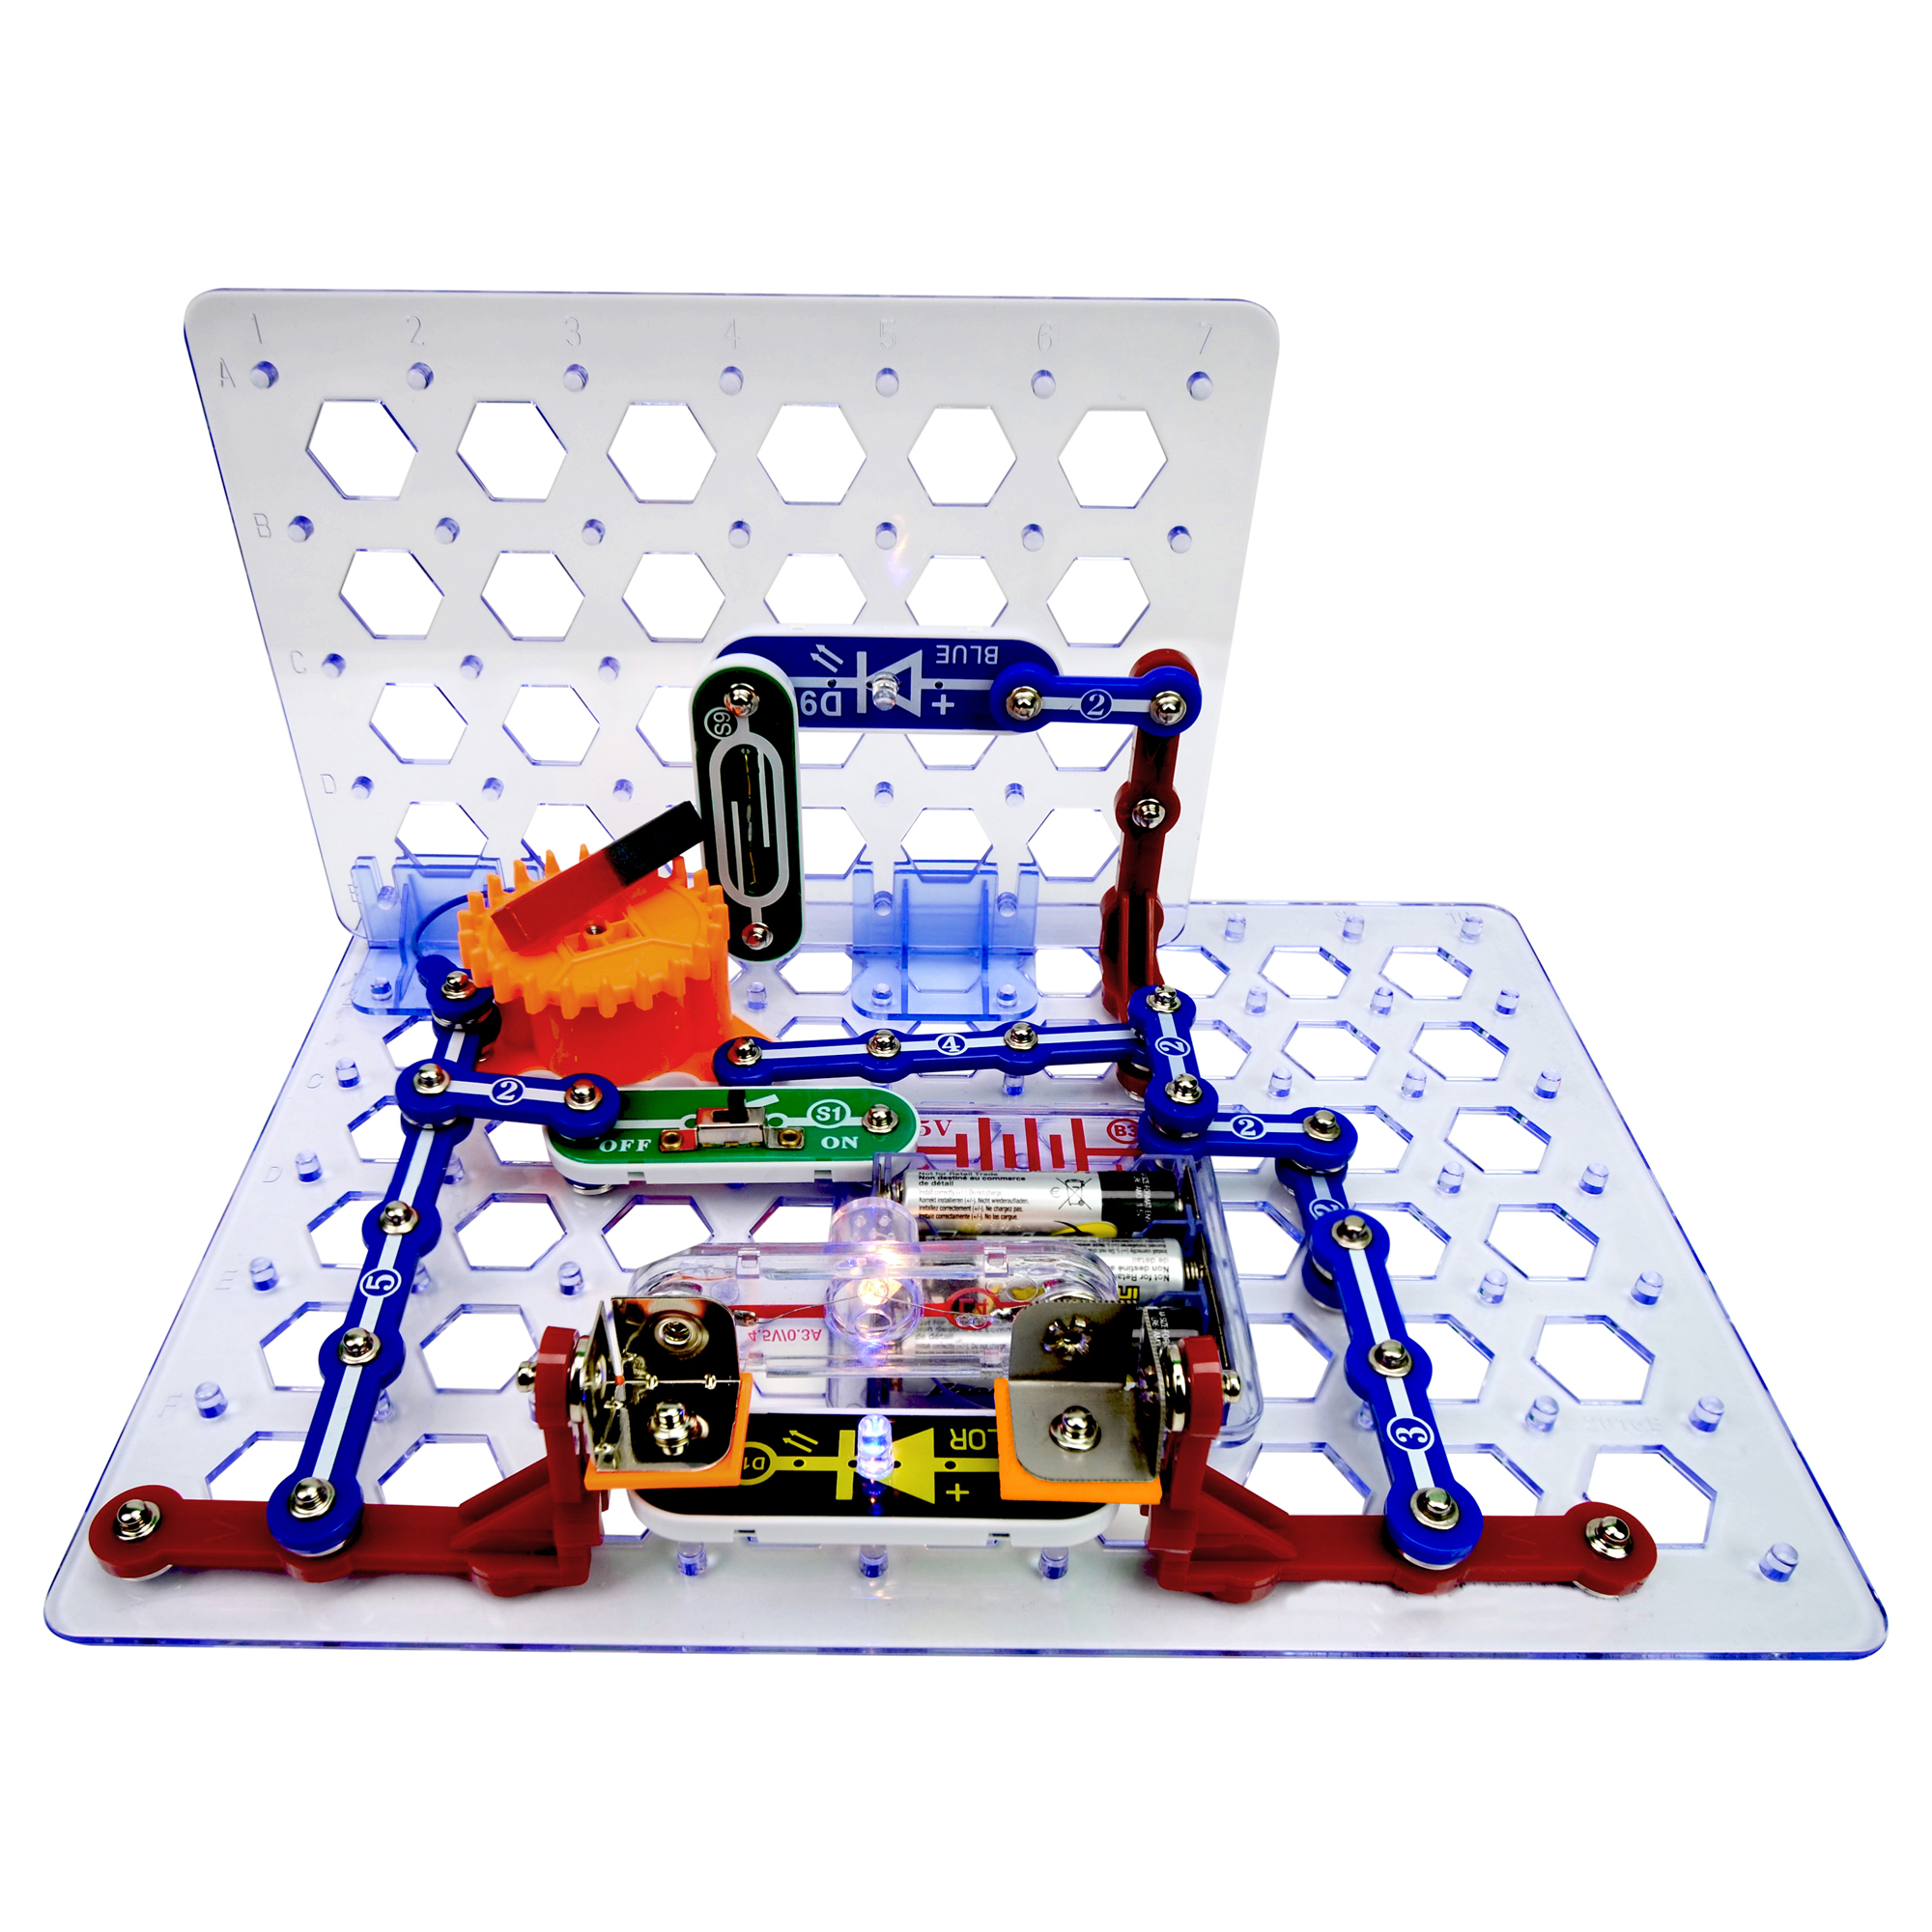 Spring Toys Circuit Boards Wiring Diagram Services Board Games Snap Circuits 3d M E G Elenco Electronics Rh Com Rc